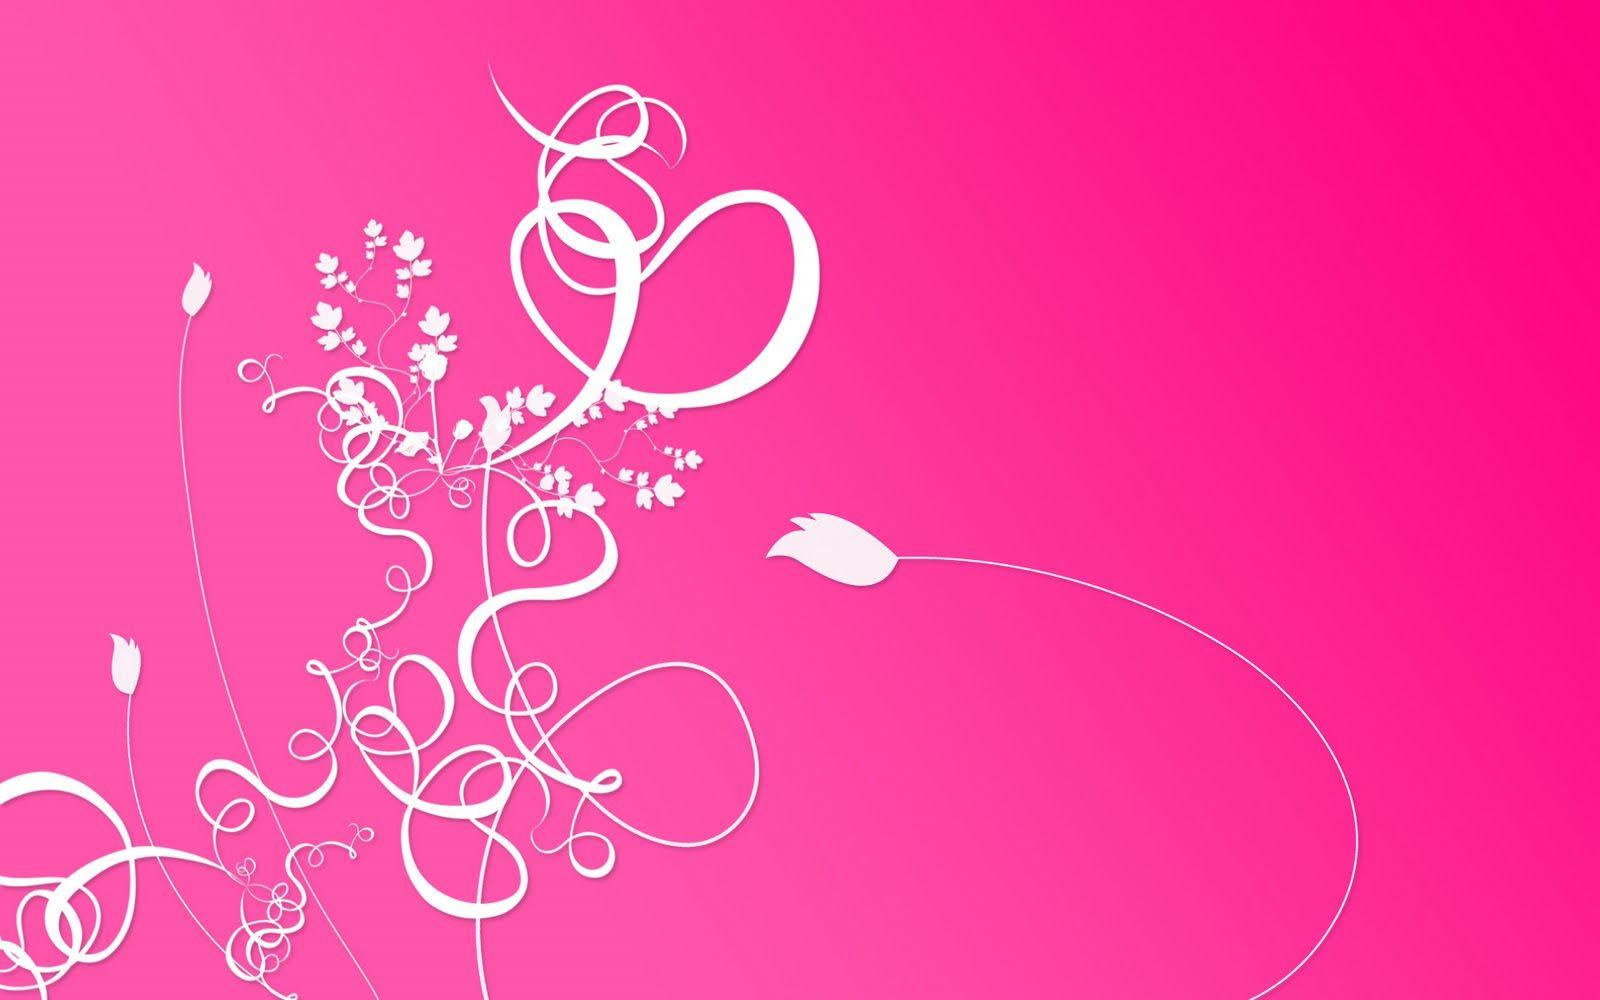 hp wallpaper pink - photo #20